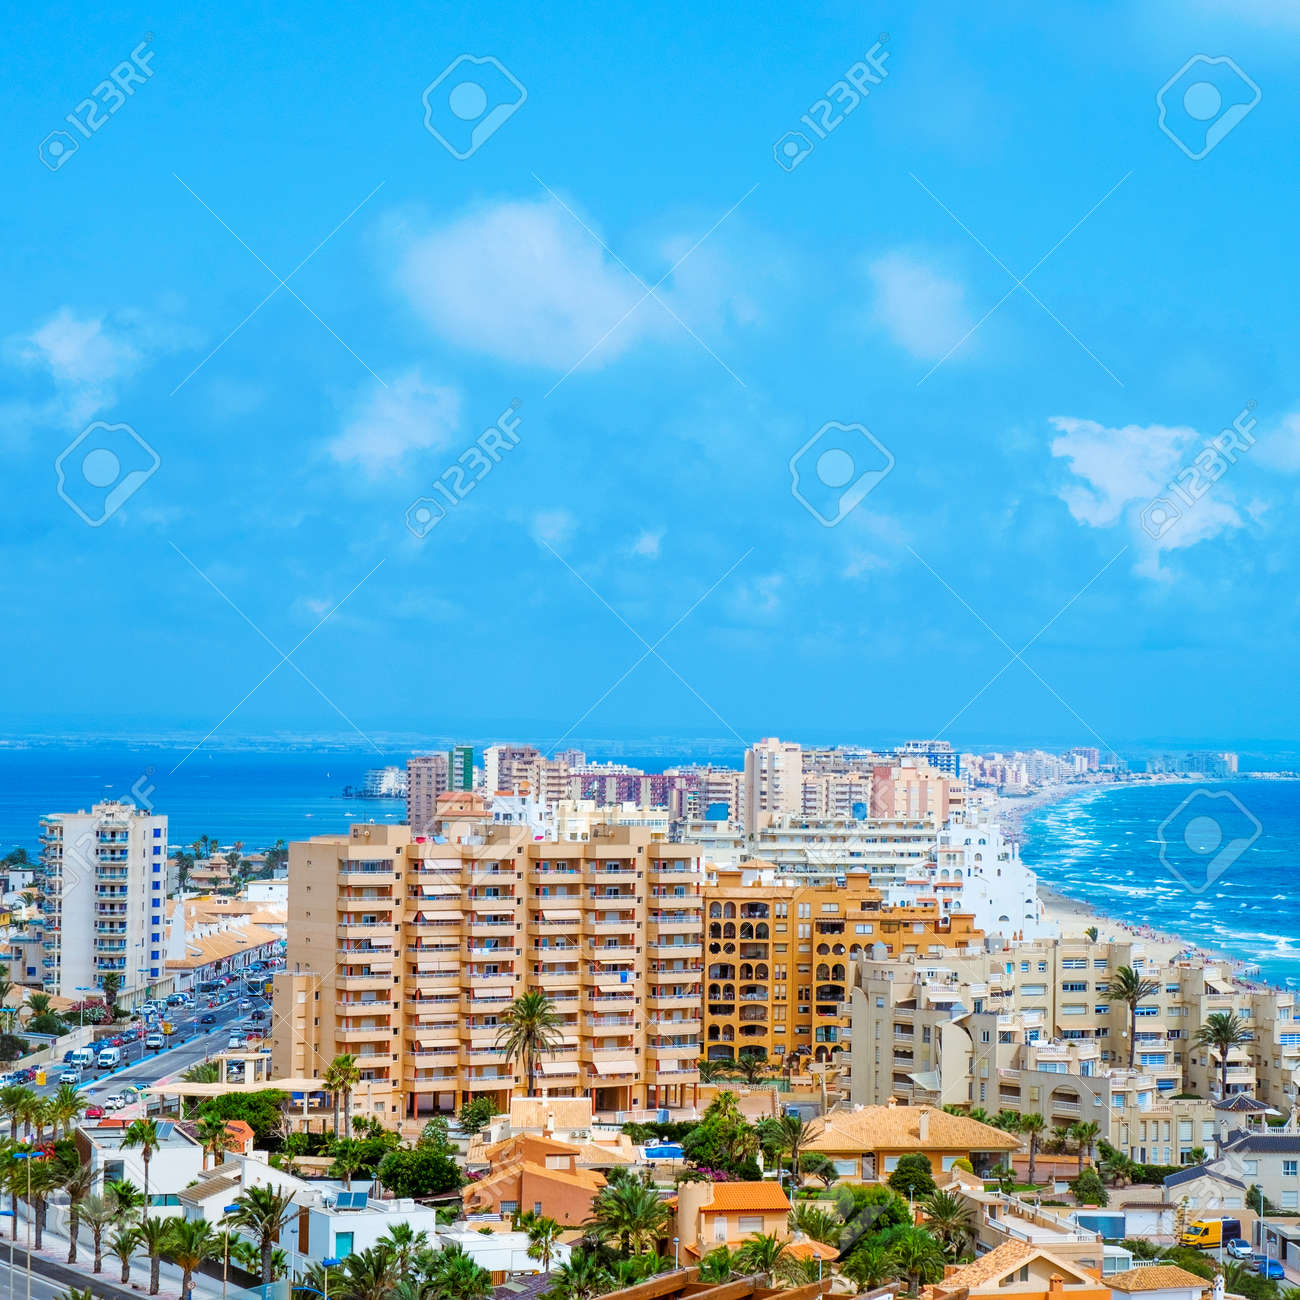 a panoramic view over La Manga del Mar Menor, in Murcia, Spain, with the Mar Menor lagoon on the left and the Mediterranean sea on the right, in a square format - 172883484